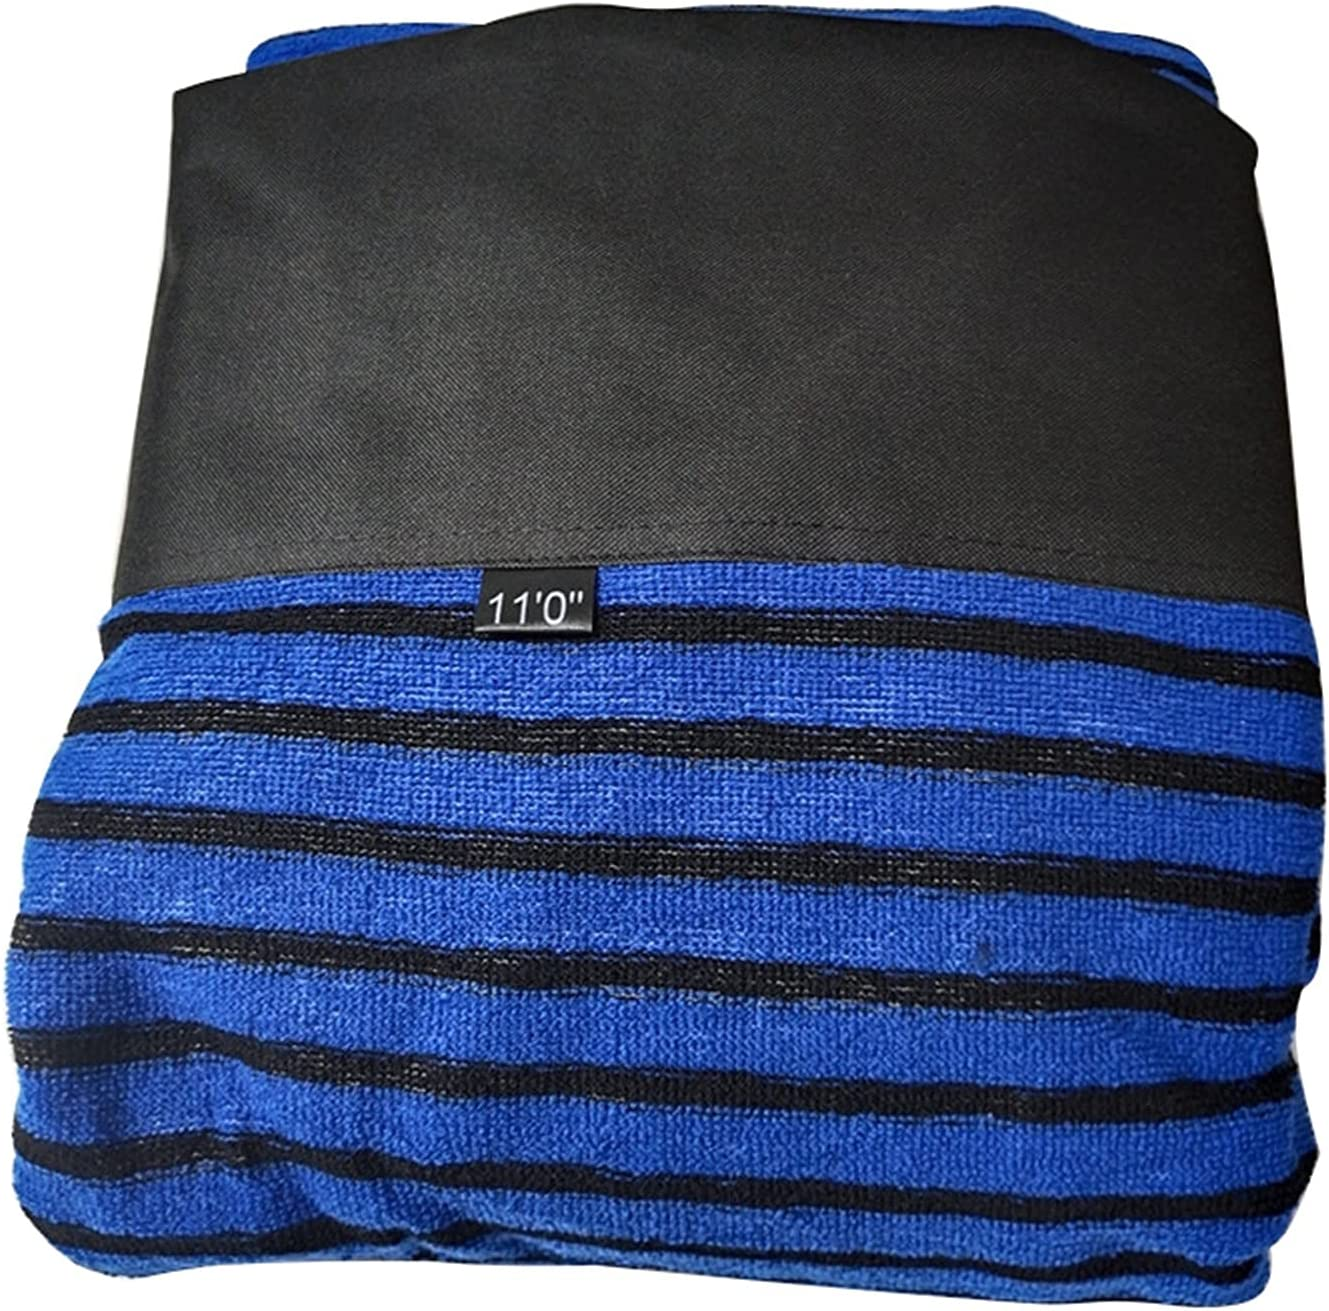 Surfboard Sock 11ft 82cm Socks High quality New product!! new Bag Surf Qui Protective